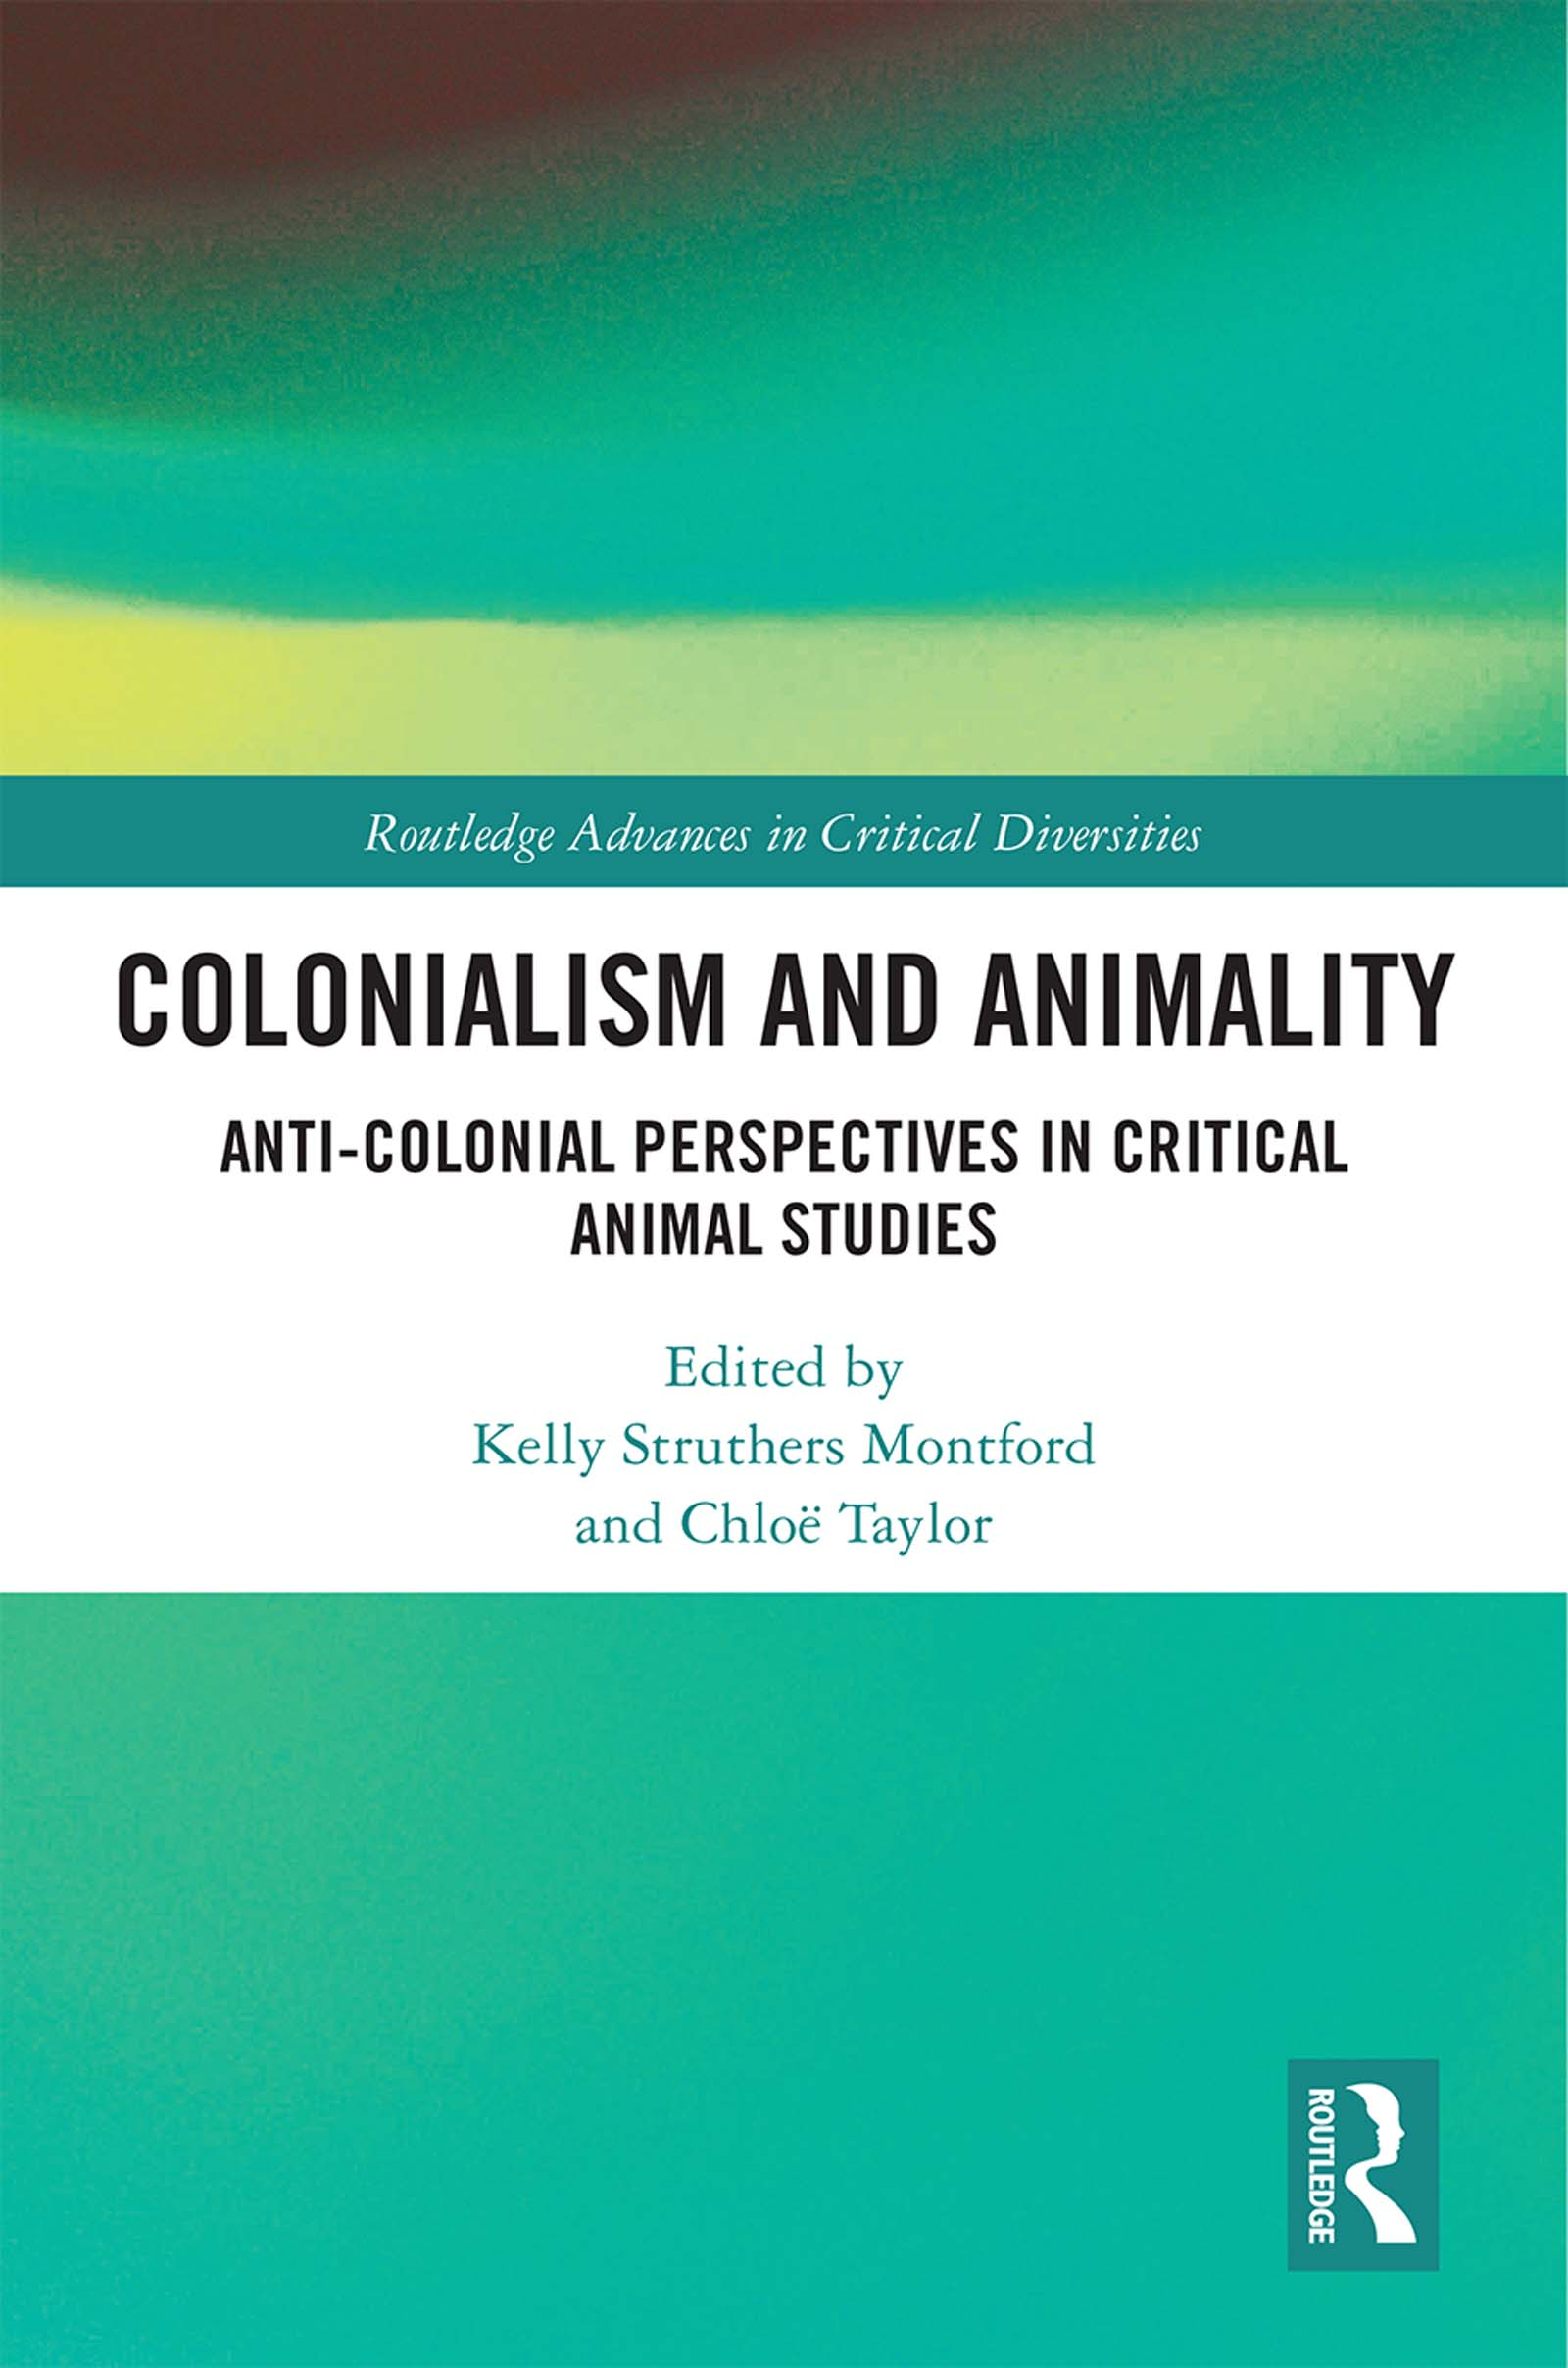 Colonialism and Animality: Anti-Colonial Perspectives in Critical Animal Studies book cover